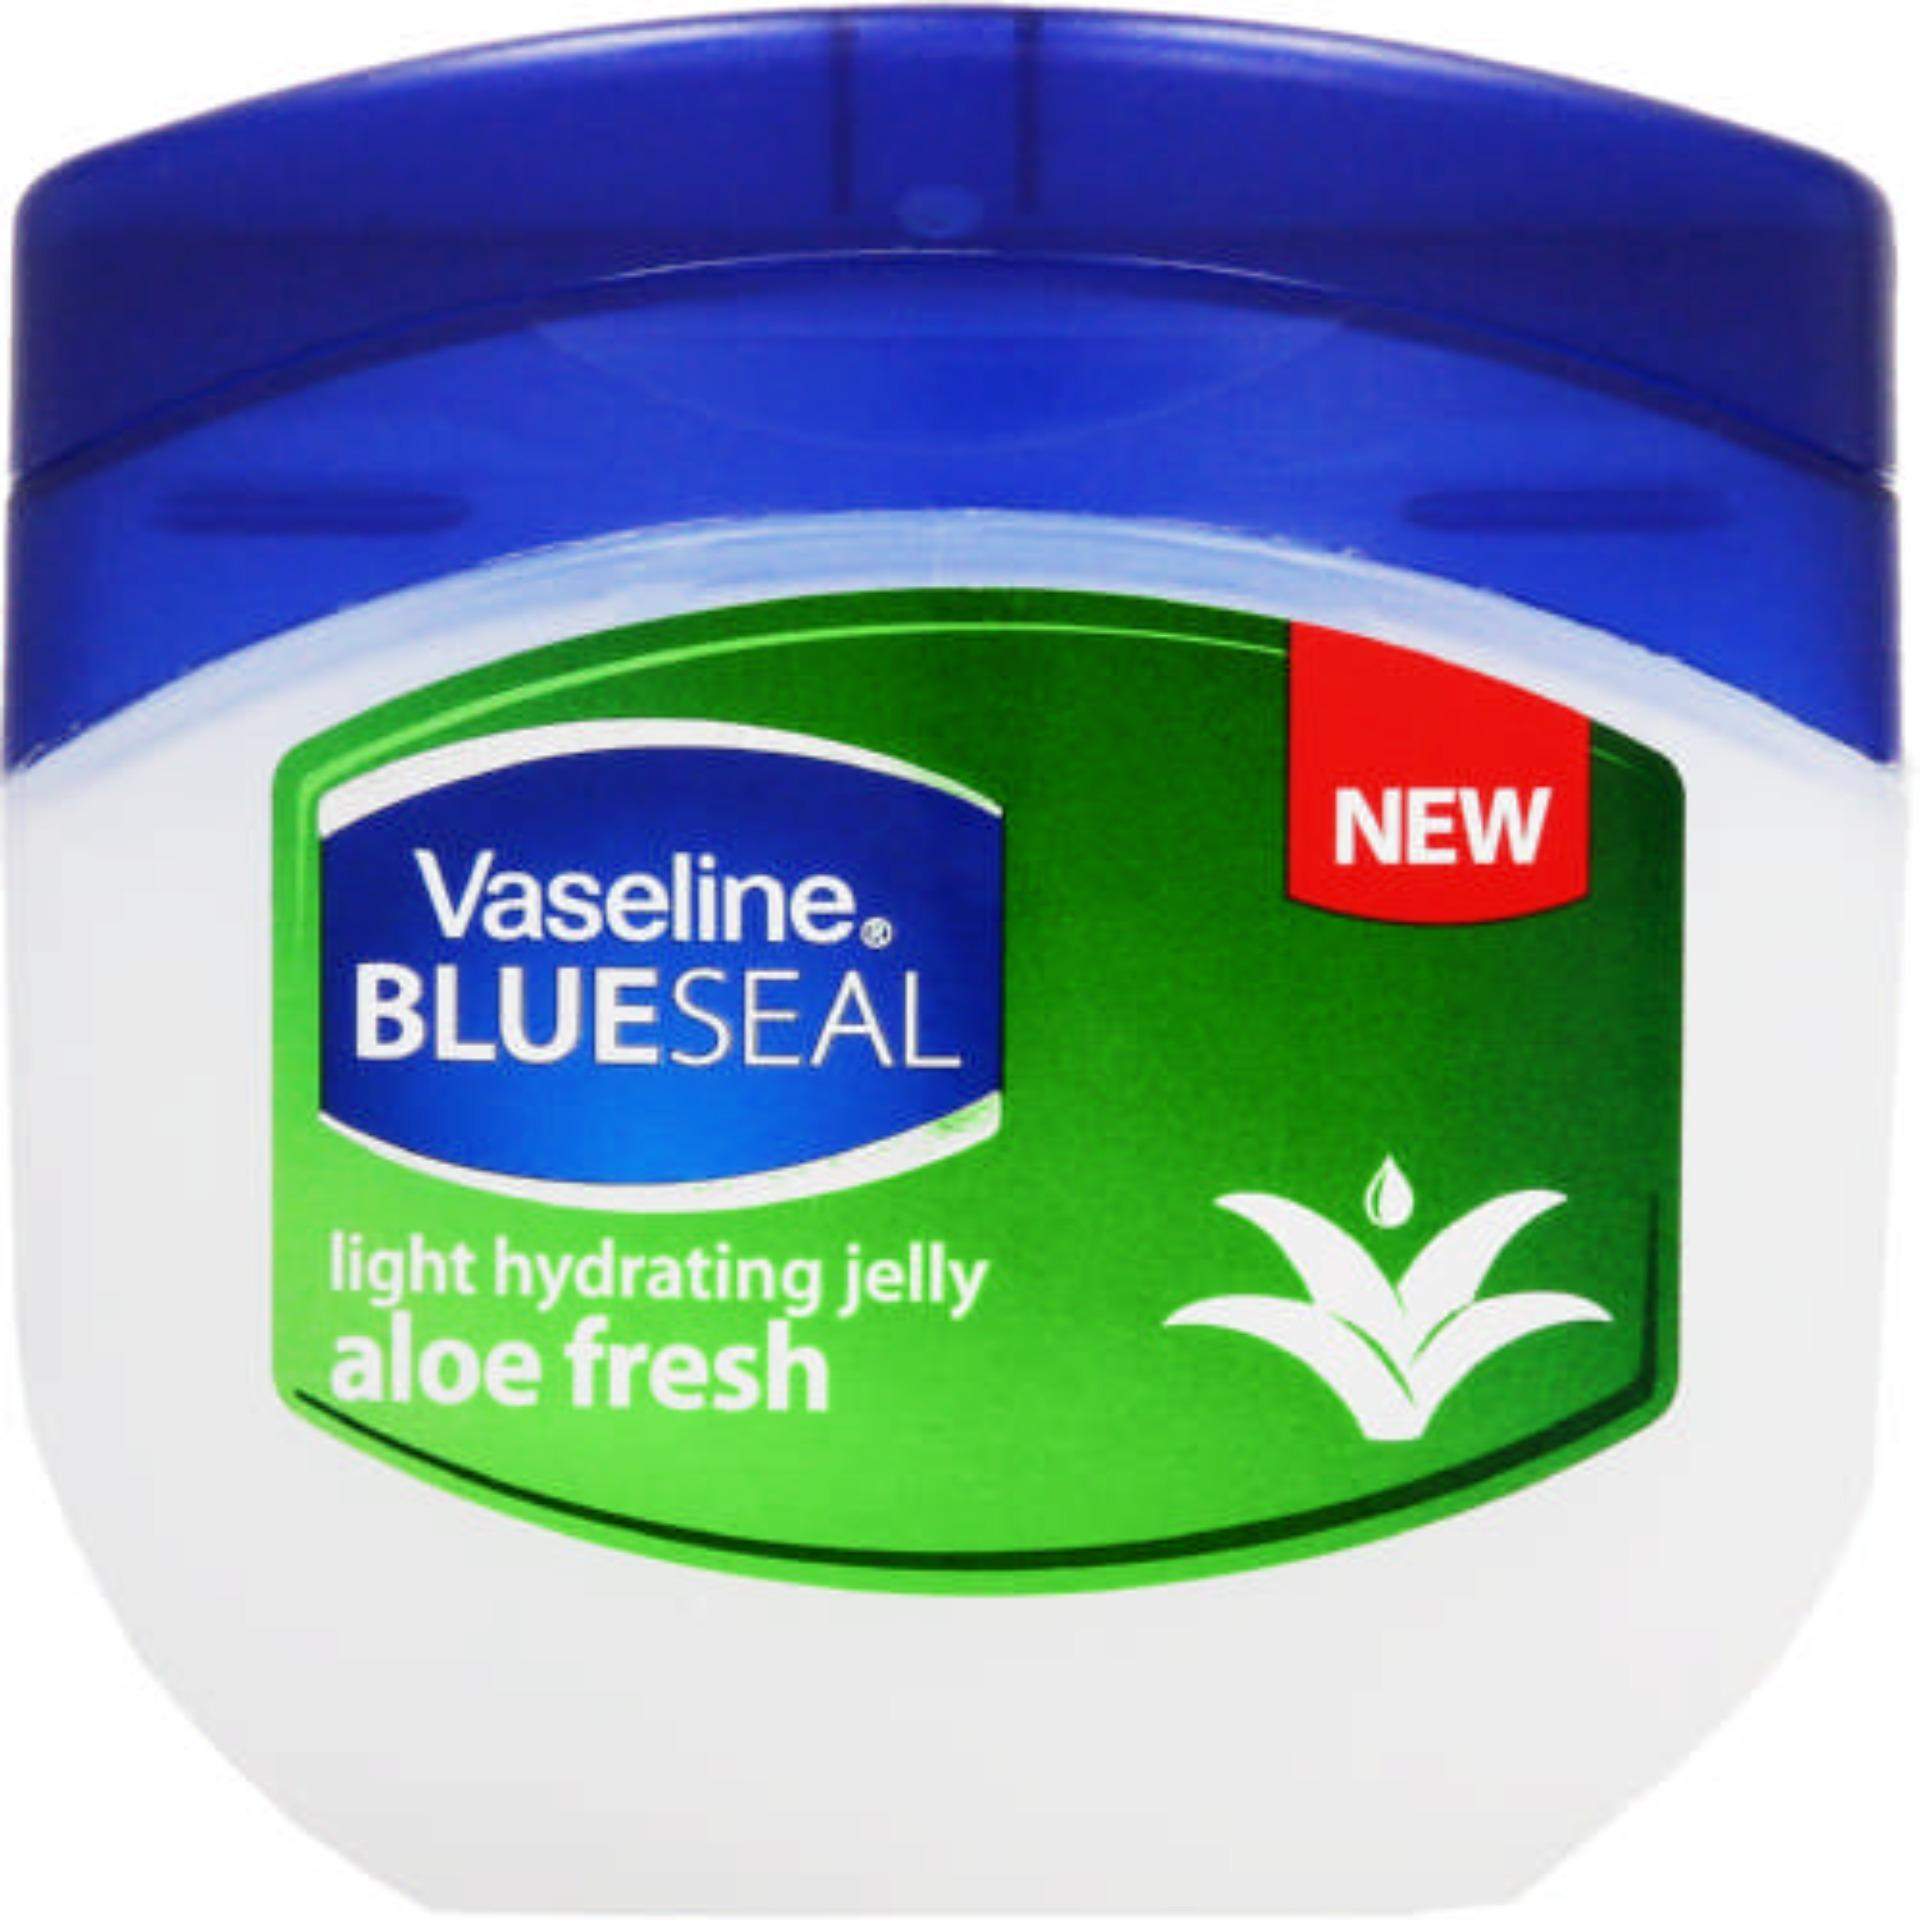 Harga Termurah Vaseline 100 Ml Aloe Vera Fresh Petroleum Jelly